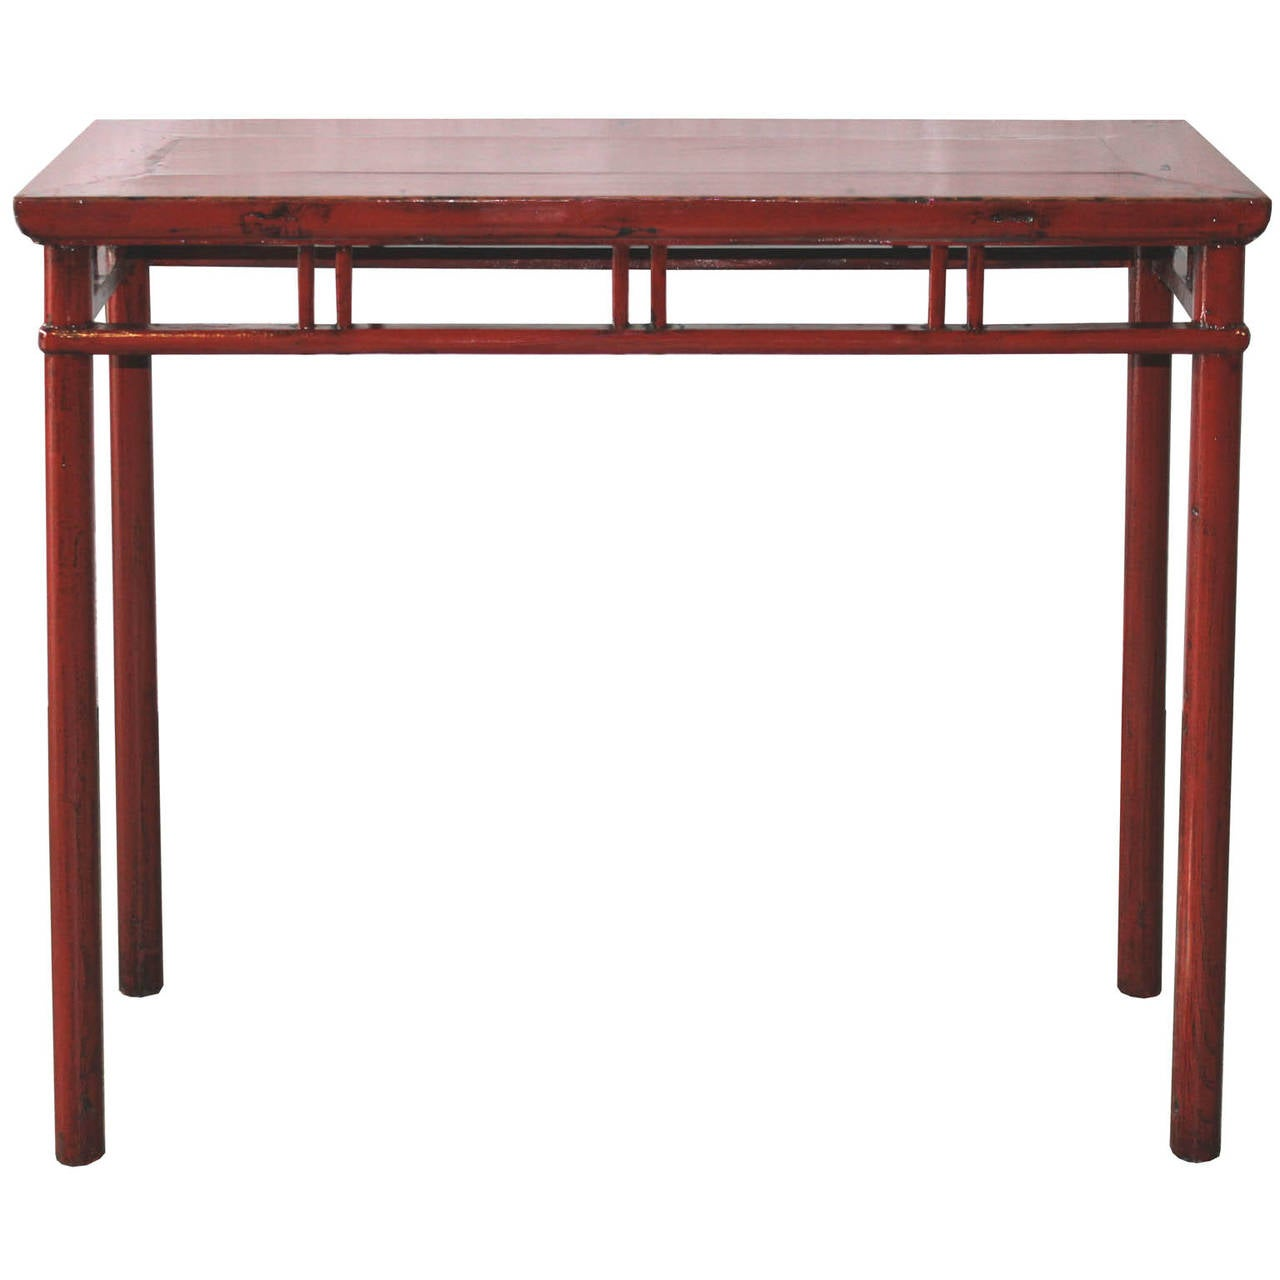 Red console table for sale at 1stdibs - Used console table for sale ...